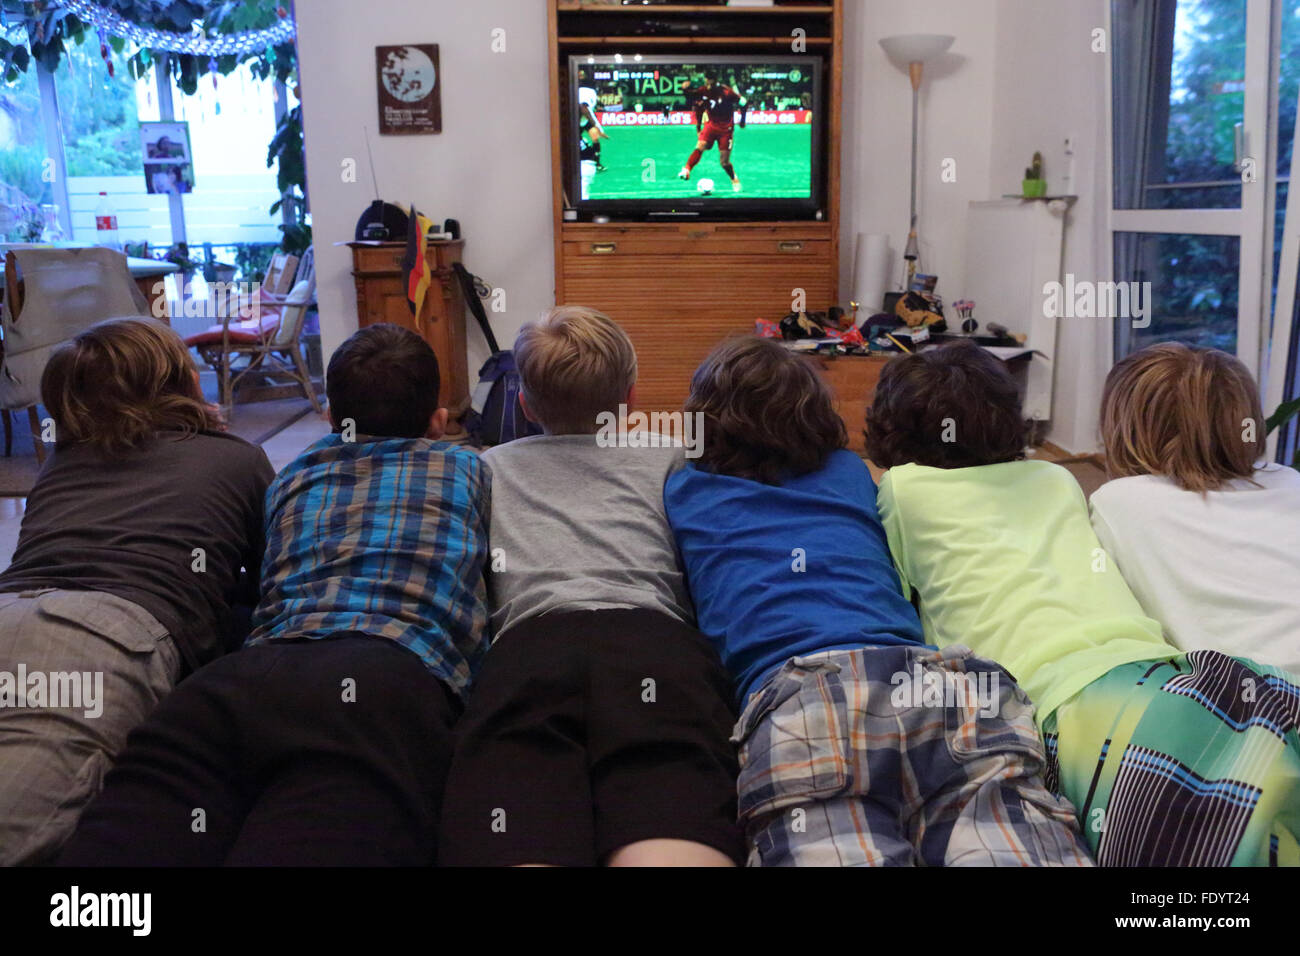 Berlin, Germany, boys look together a football game on television - Stock Image